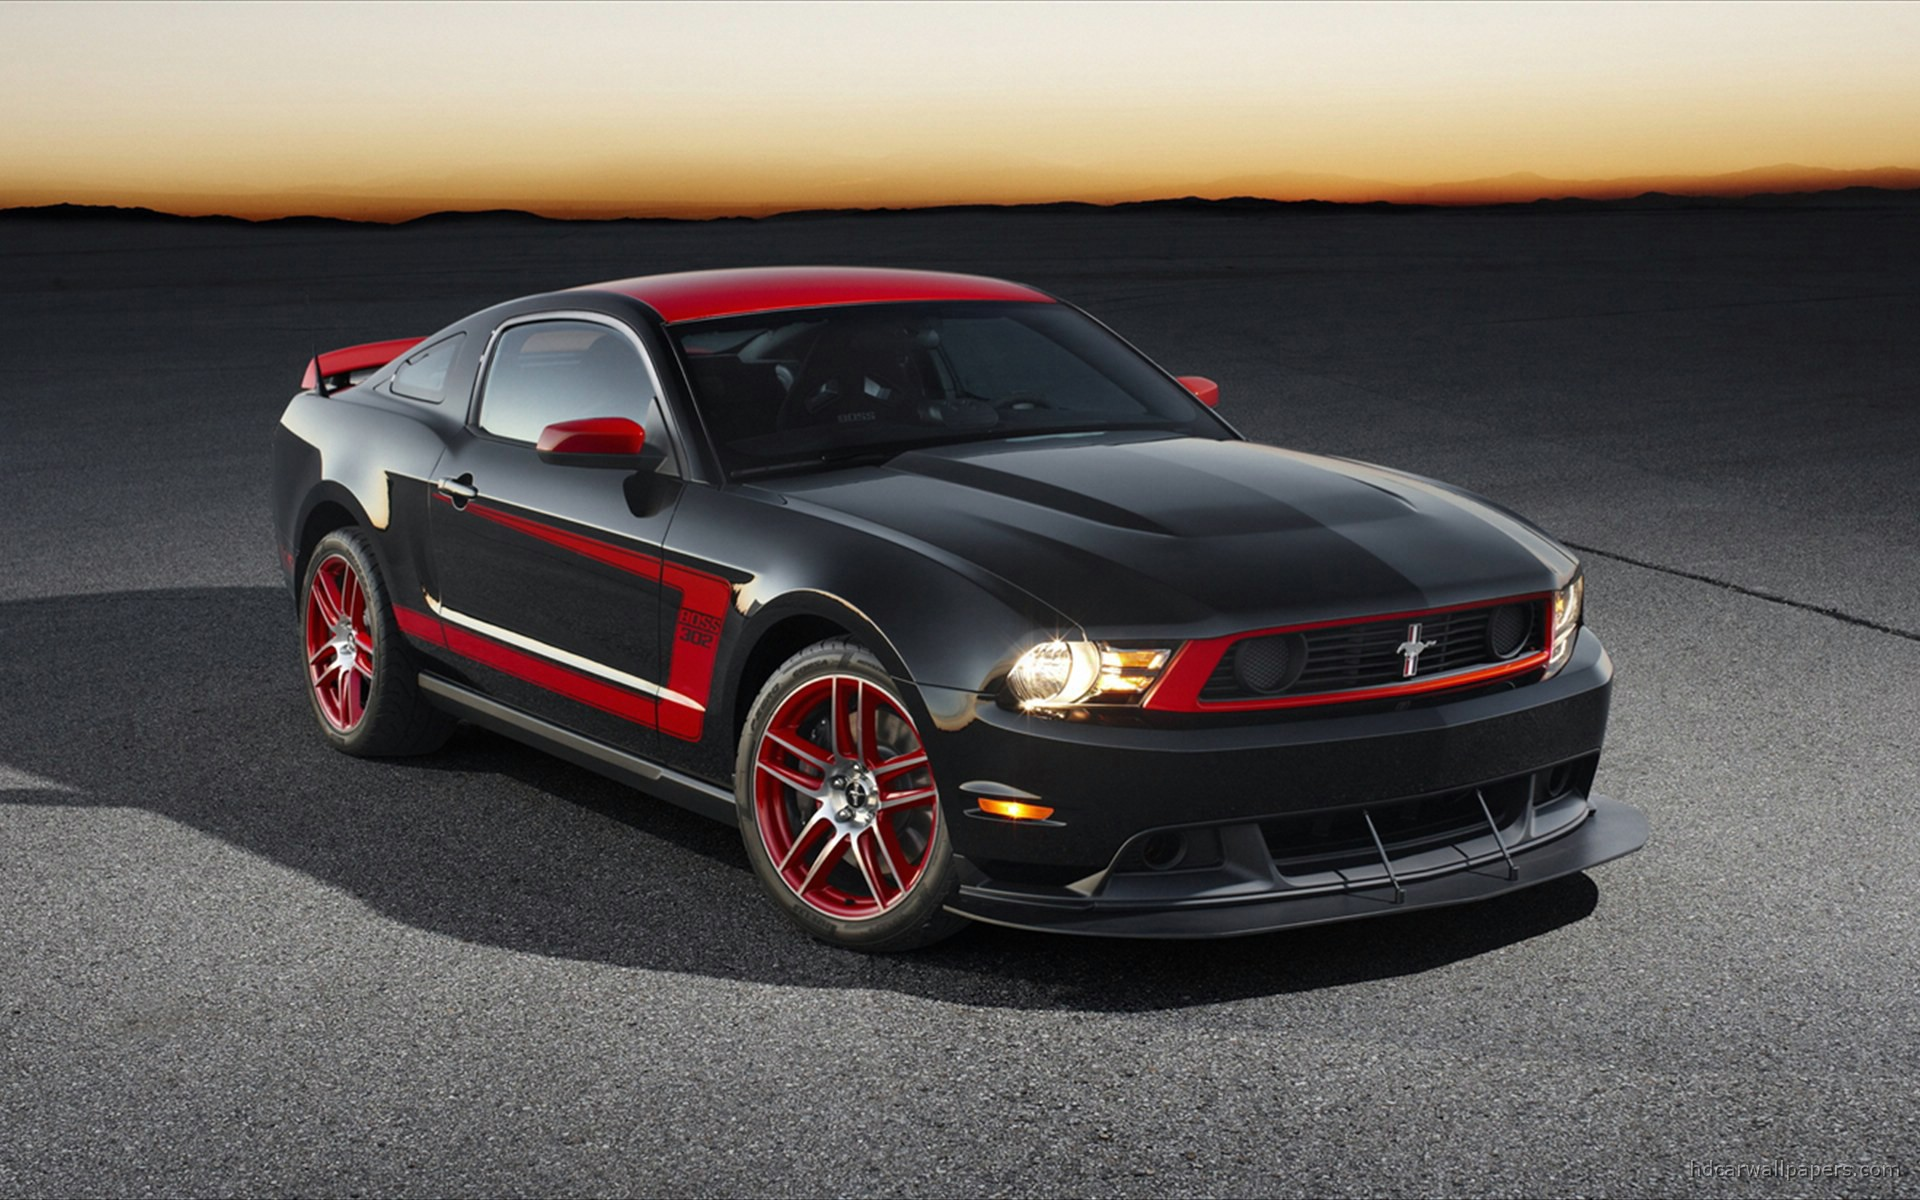 2012 Ford Mustang Boss Wallpaper Hd Car Wallpapers Id